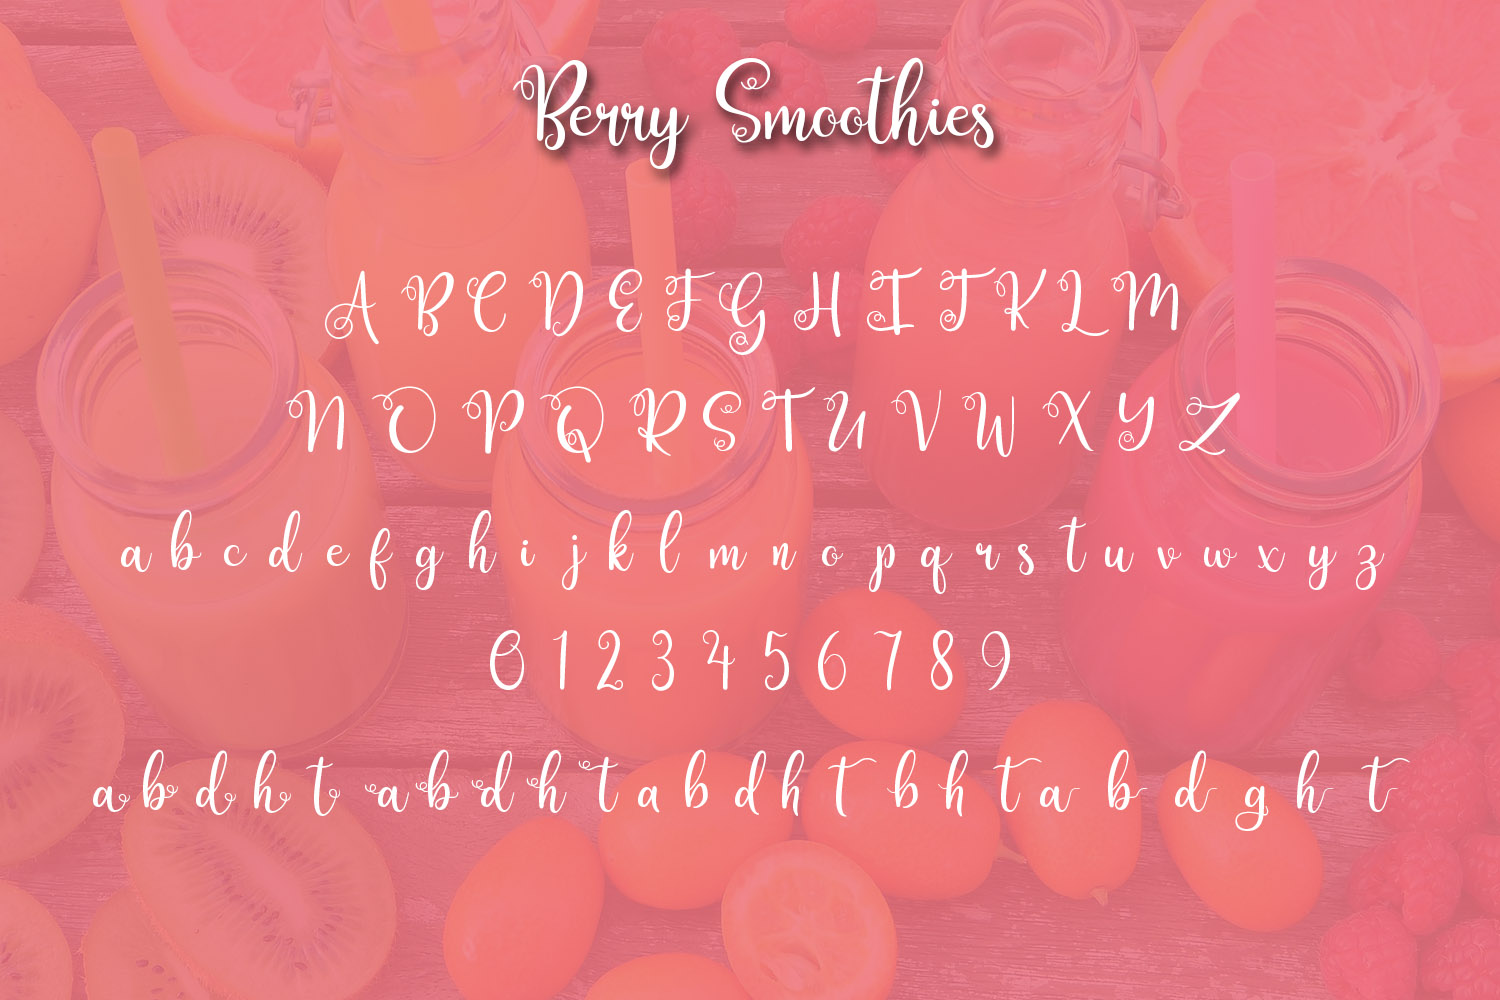 Berry Smoothies example image 5